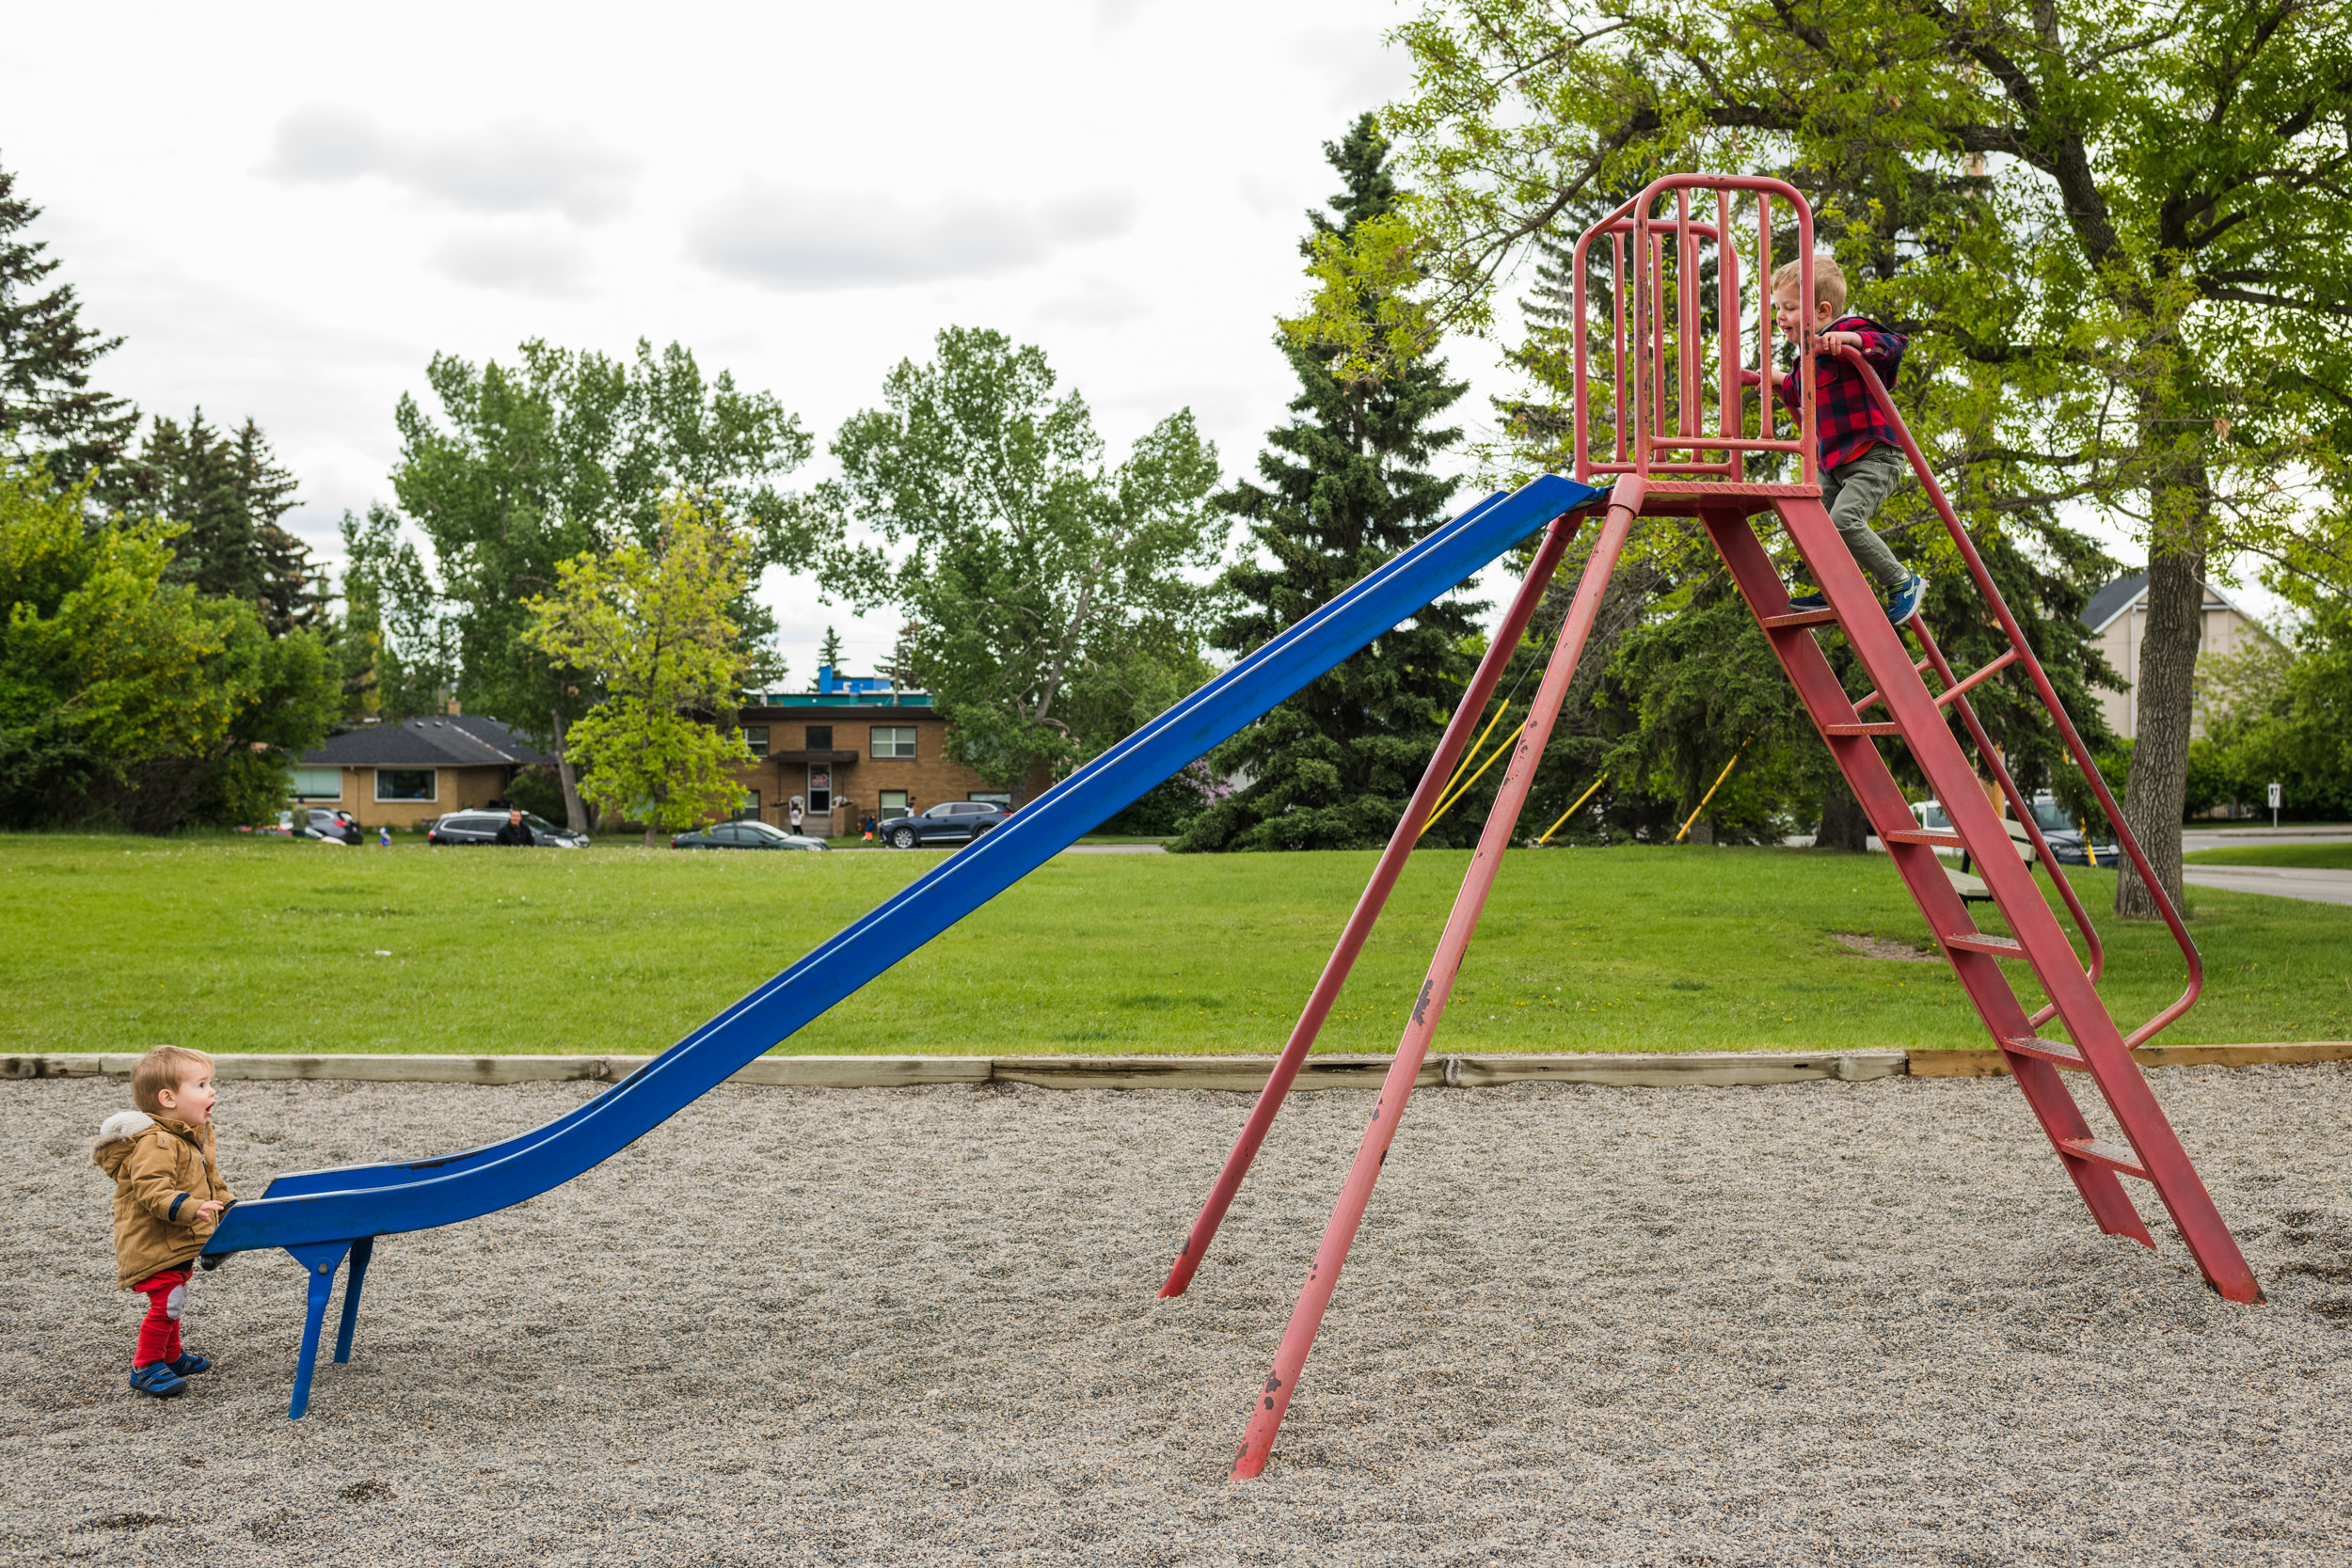 Toddler younger brother waits at the bottom of a slide as his big brother climbs to the top of it at the playground.